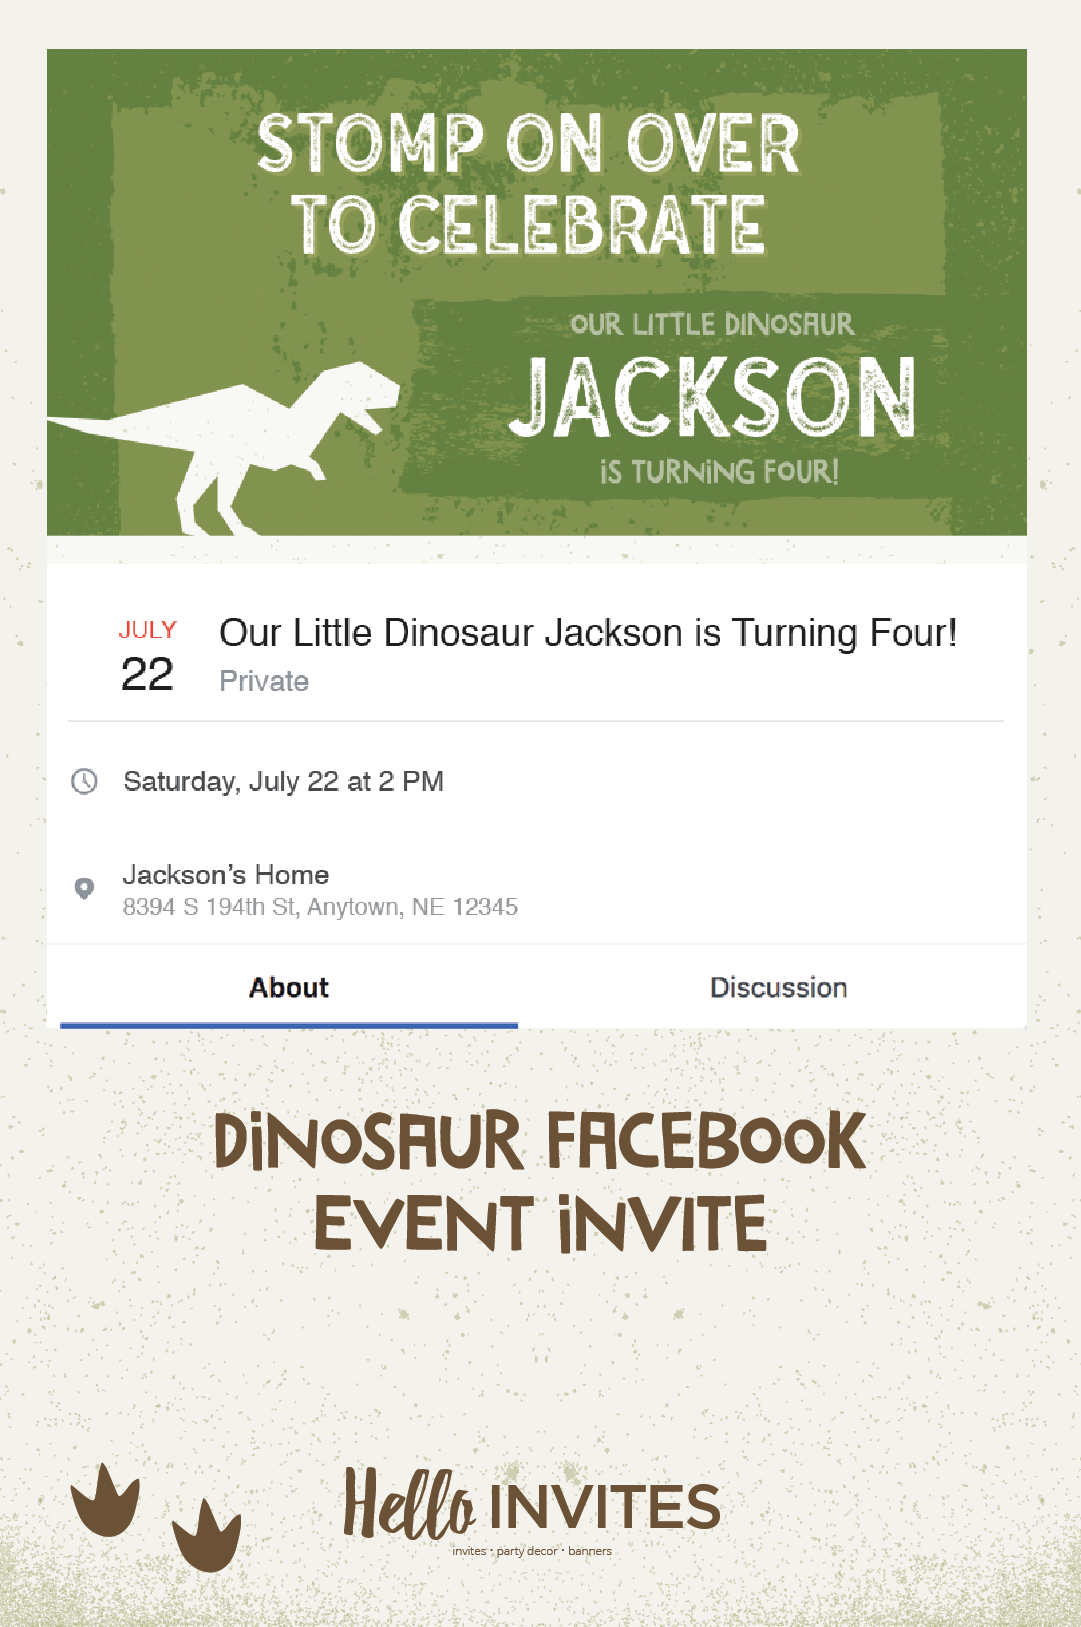 Dinosaur Birthday Facebook Event Invitation Green Brown Dirt Boy Roar Stomp On Over Invite Digital